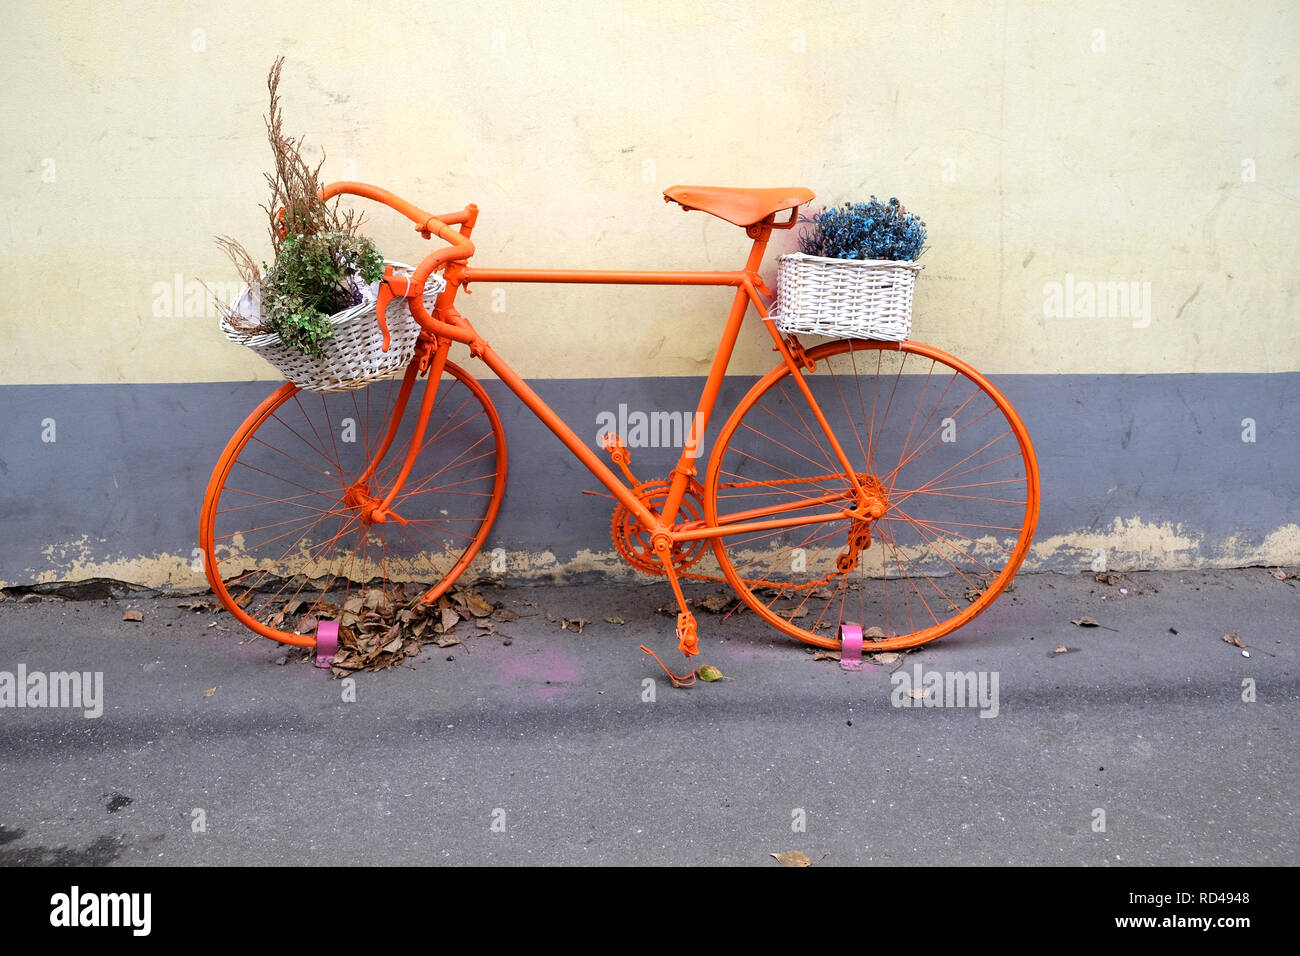 Retro style sport bicycle color orange with flower baskets as decoration outdoor near the wall front view - Stock Image